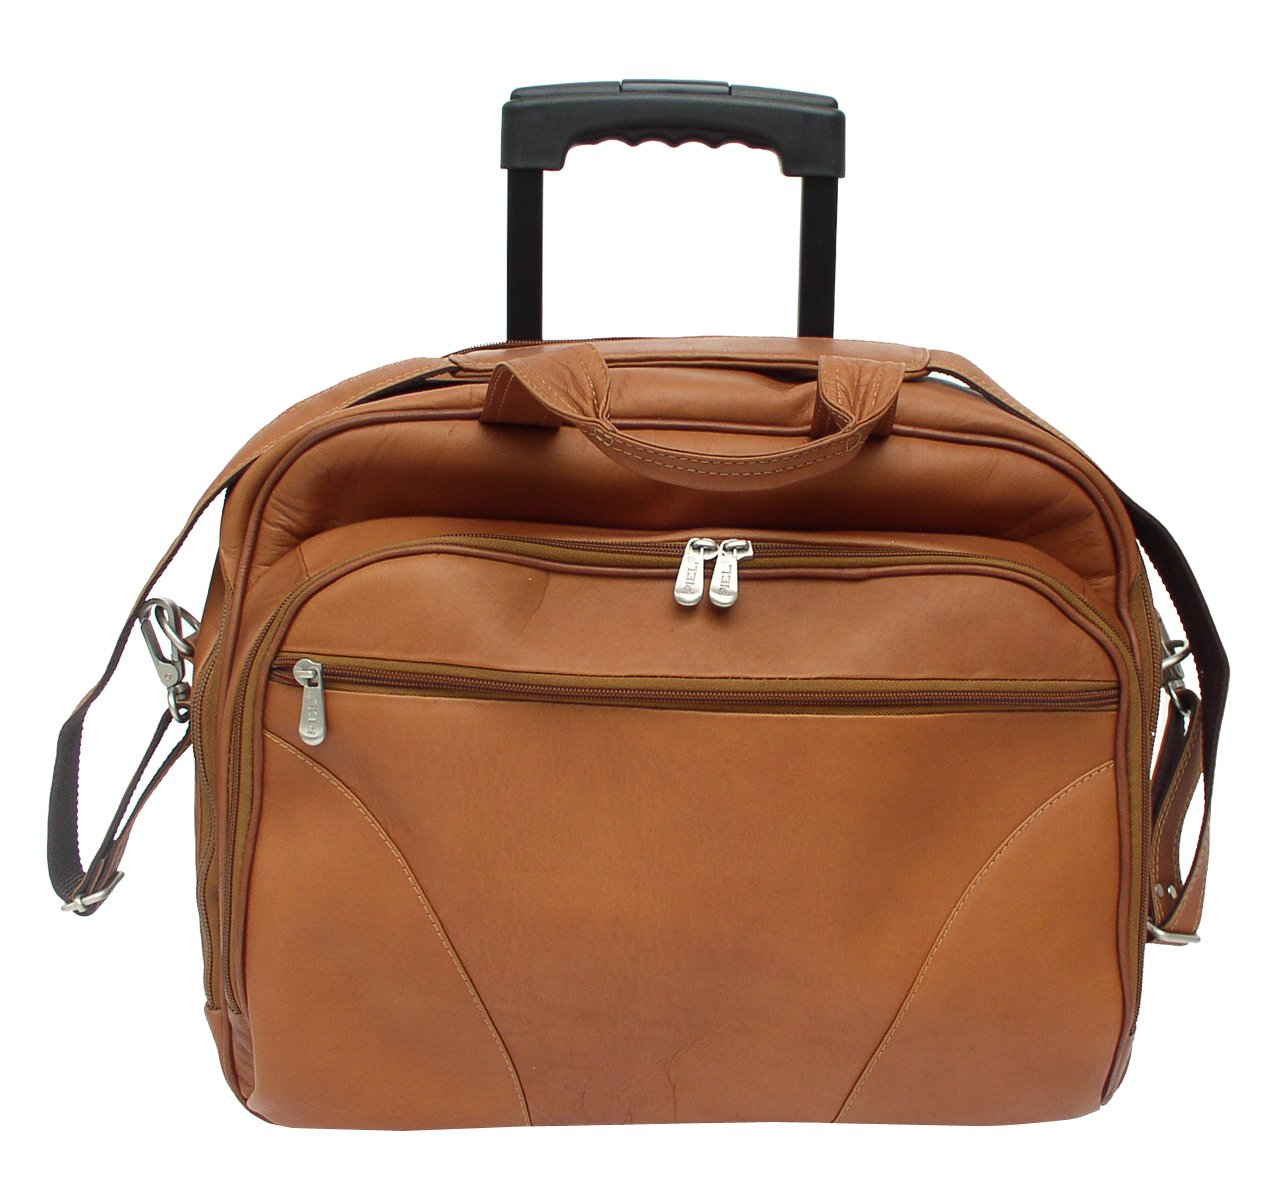 Piel leather Rolling Laptop Briefcase, Office on Wheels Case in Saddle by Piel Leather